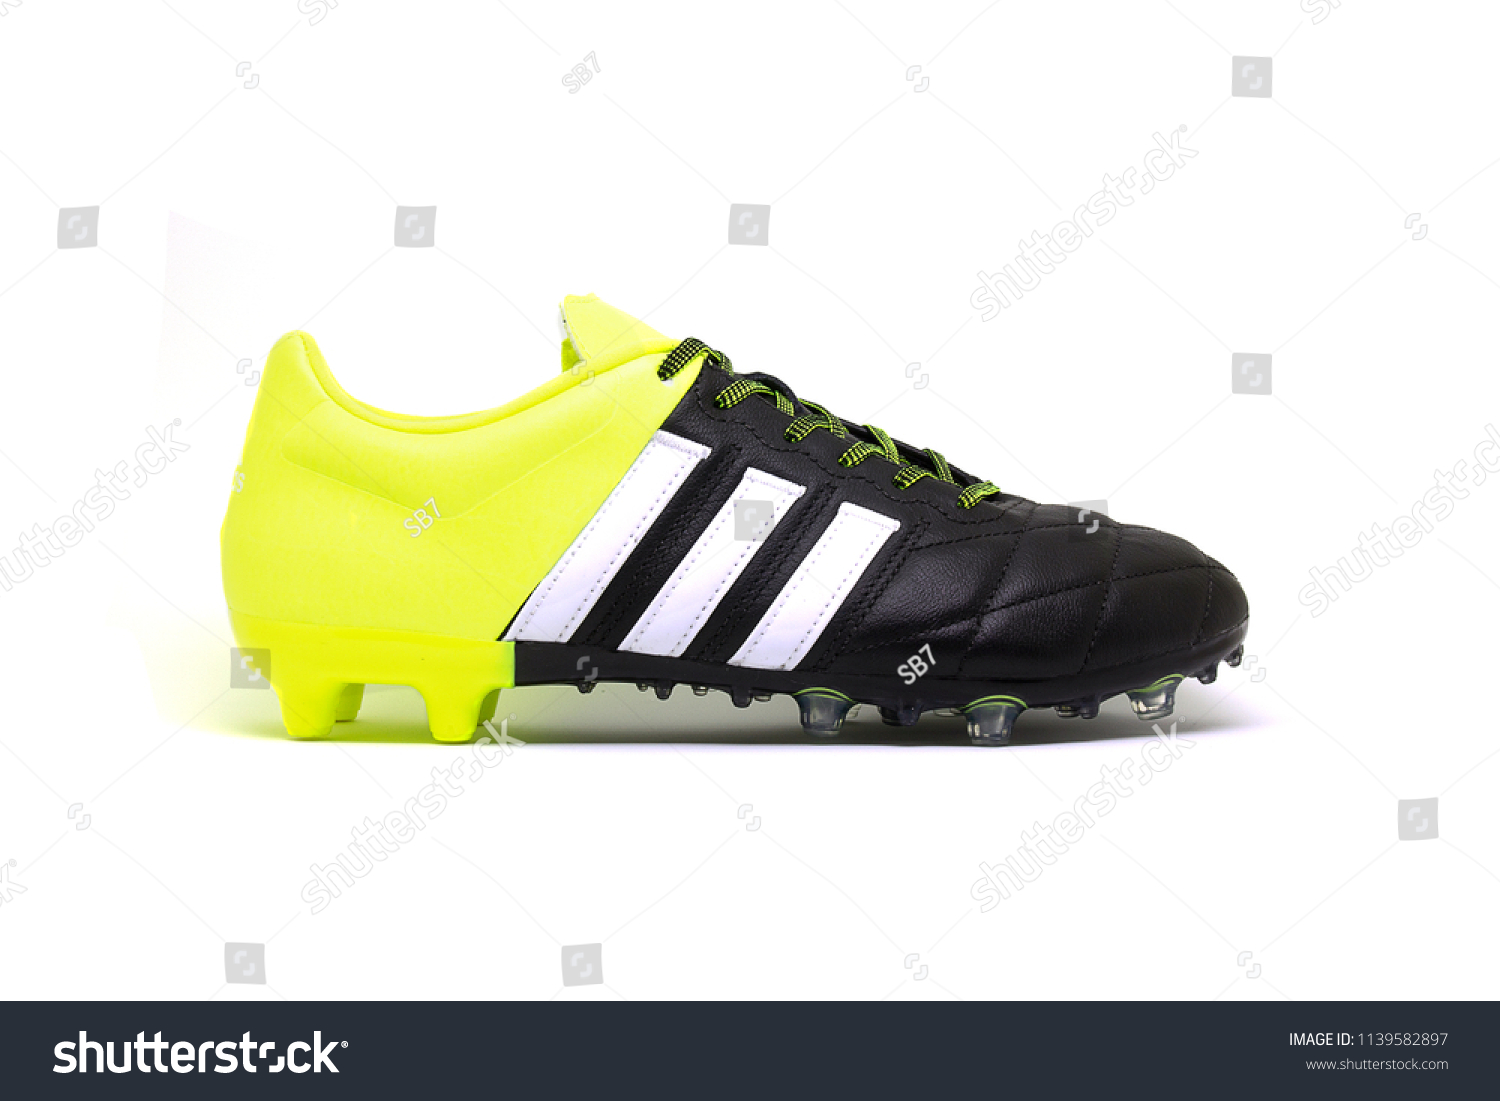 767626a395d8 Football Boots Soccer Shoes Adidas Ace Stock Photo (Edit Now ...